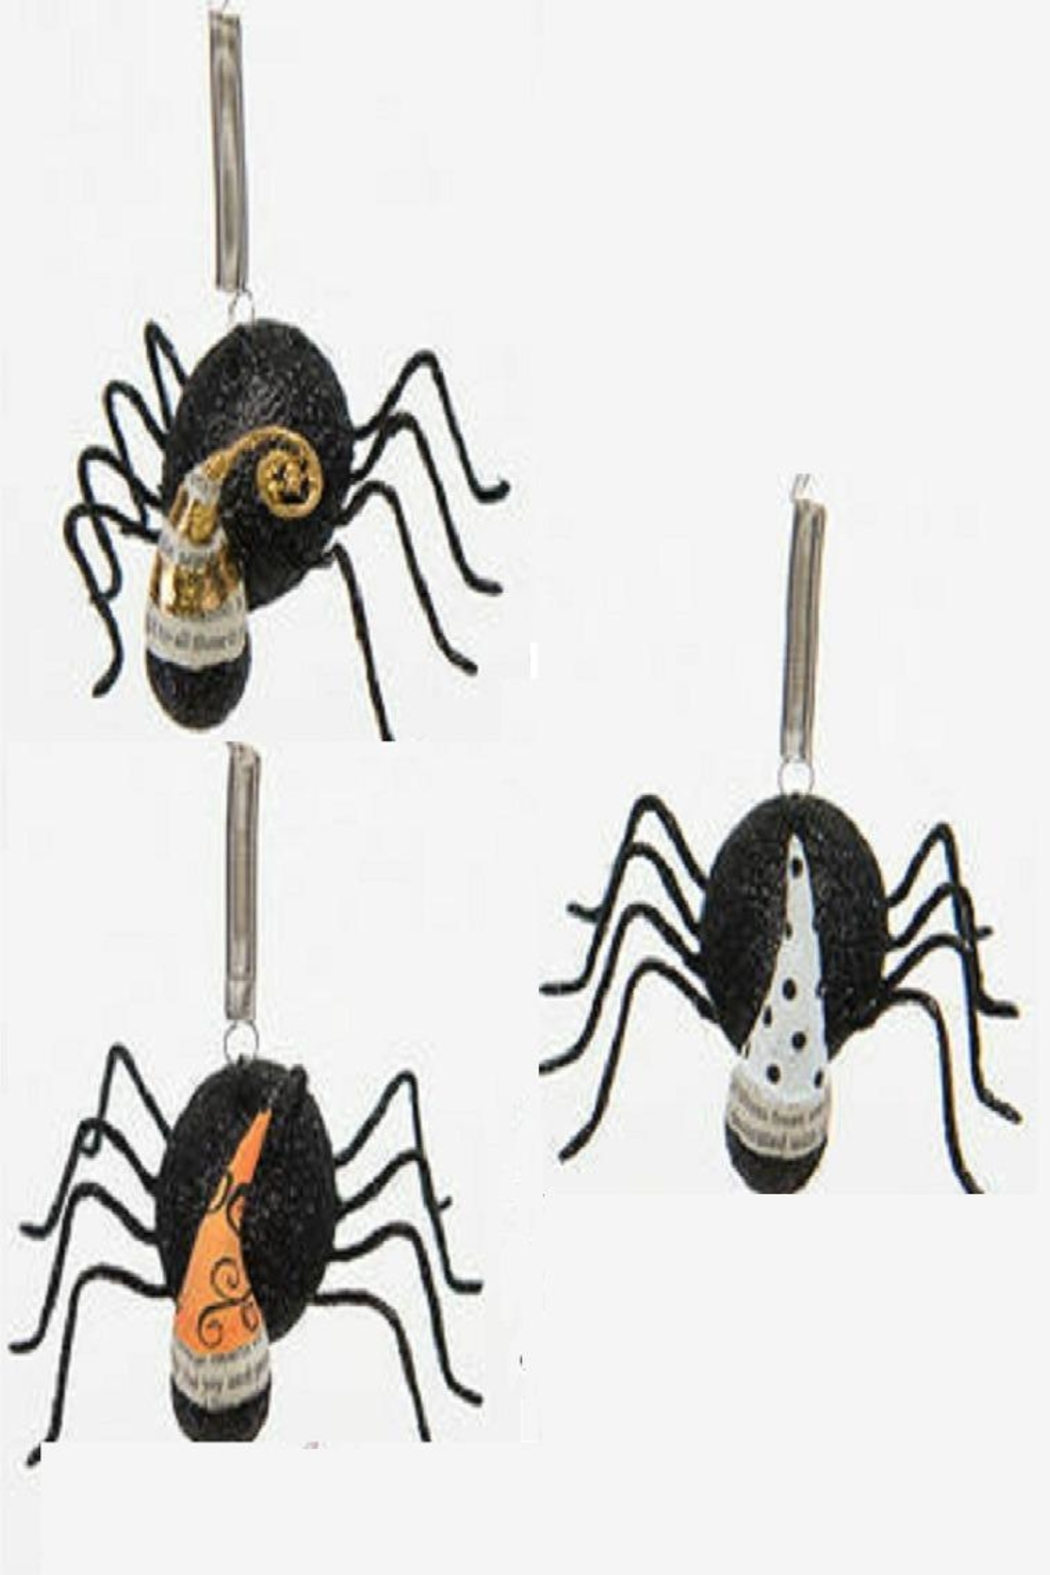 One Hundred 80 Degrees Bungee Spiders With Hats - Main Image